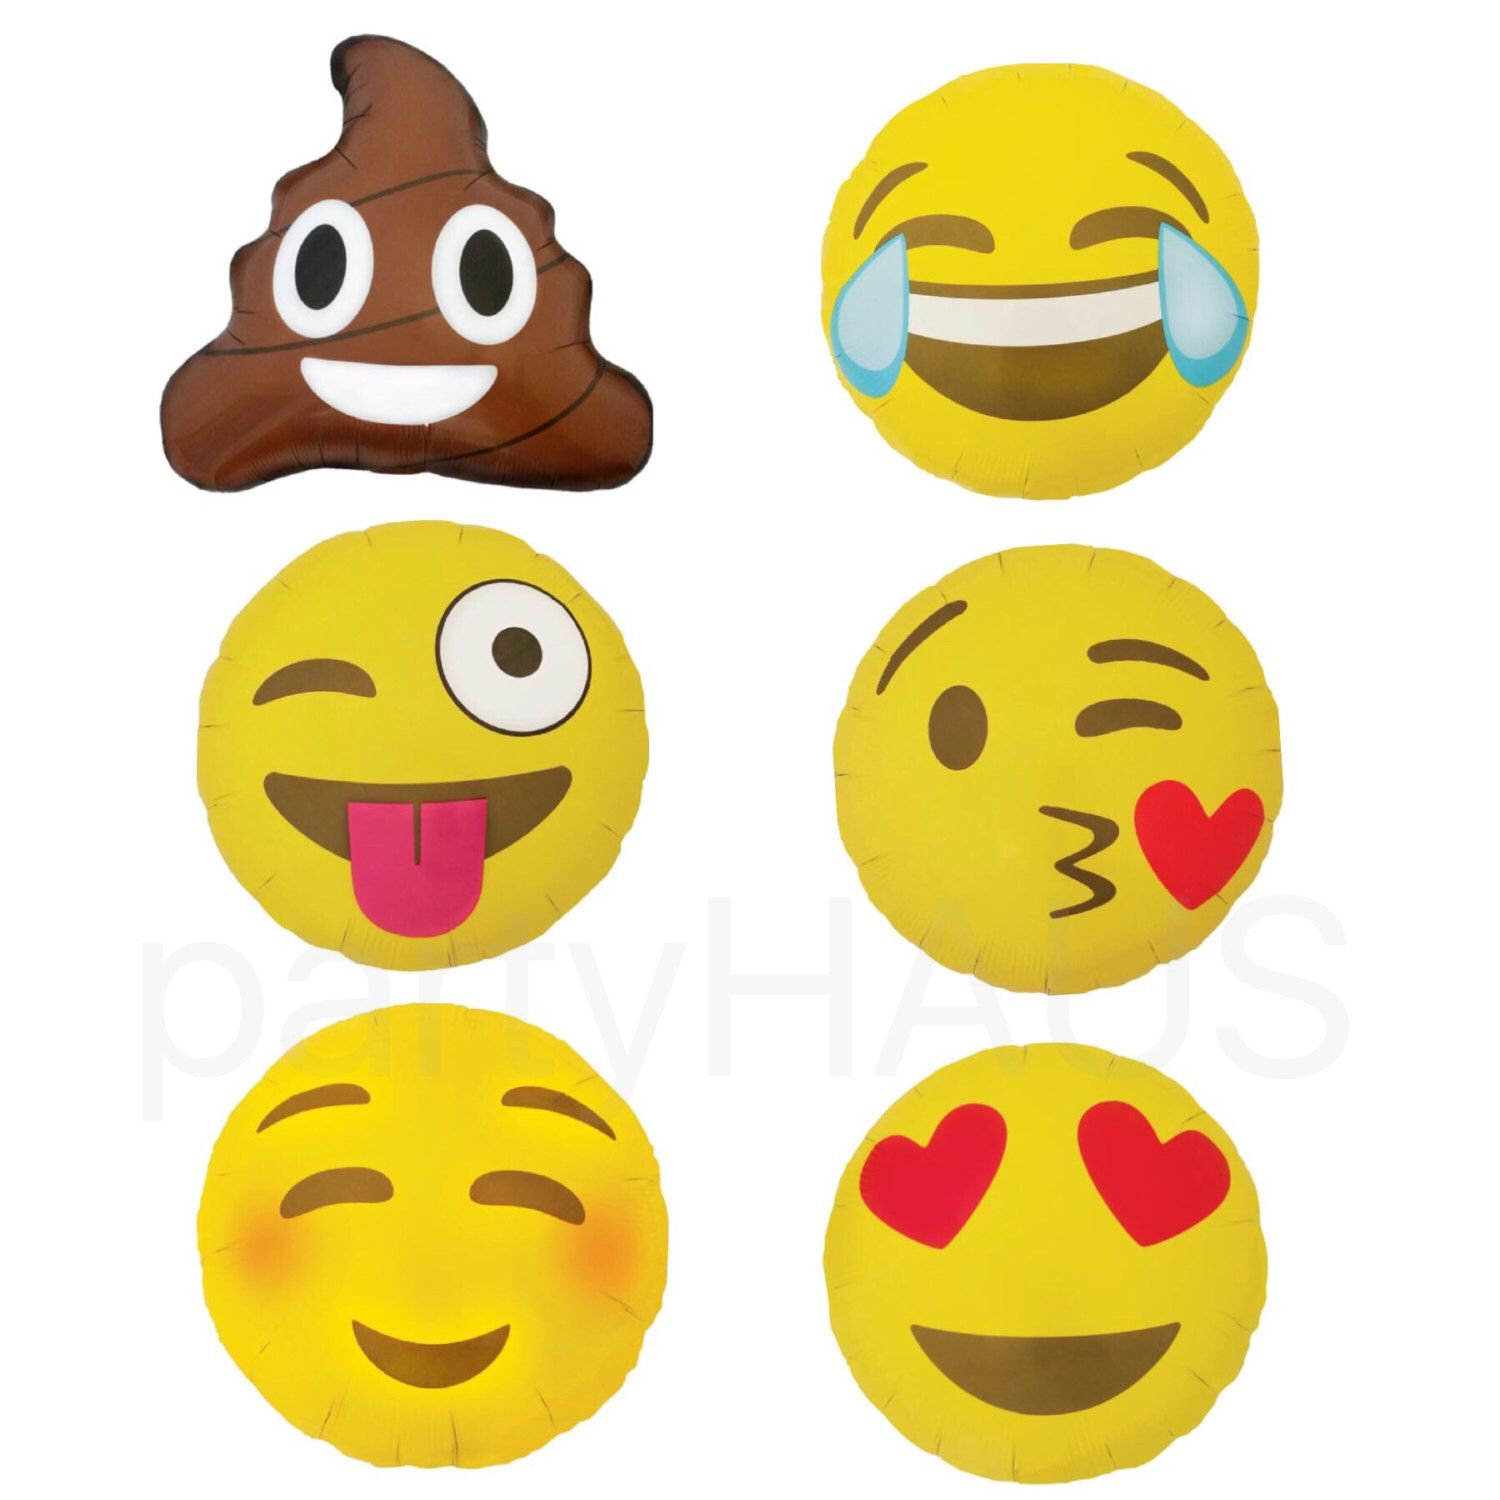 Lotus Notes Emoticons Party Emoji Photo Booths And Birthday Parties On Pinterest